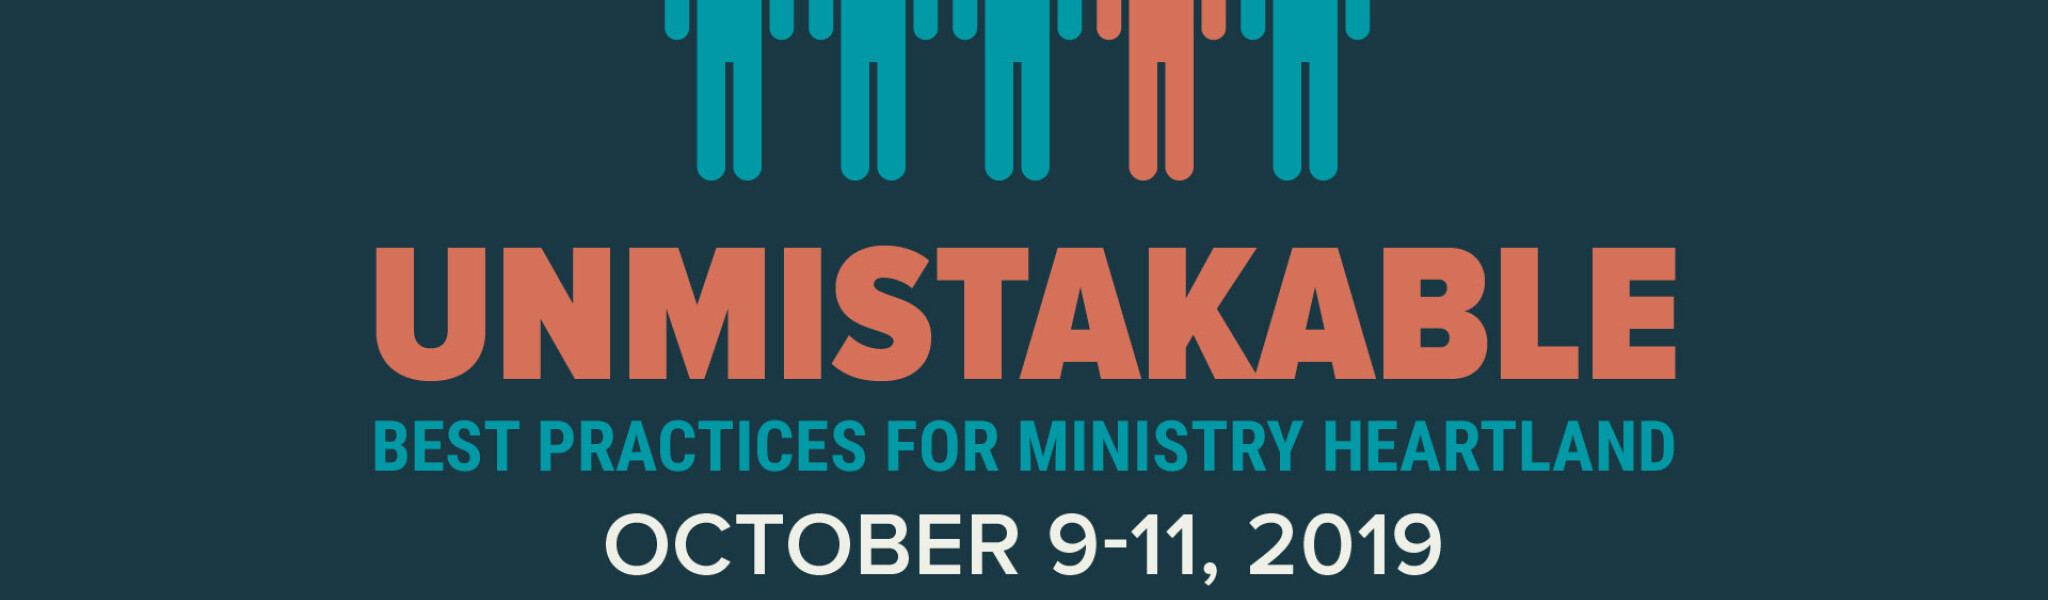 Best Practices for Ministry Heartland | Cornerstone Lutheran Church | Cornerstone Lutheran Church